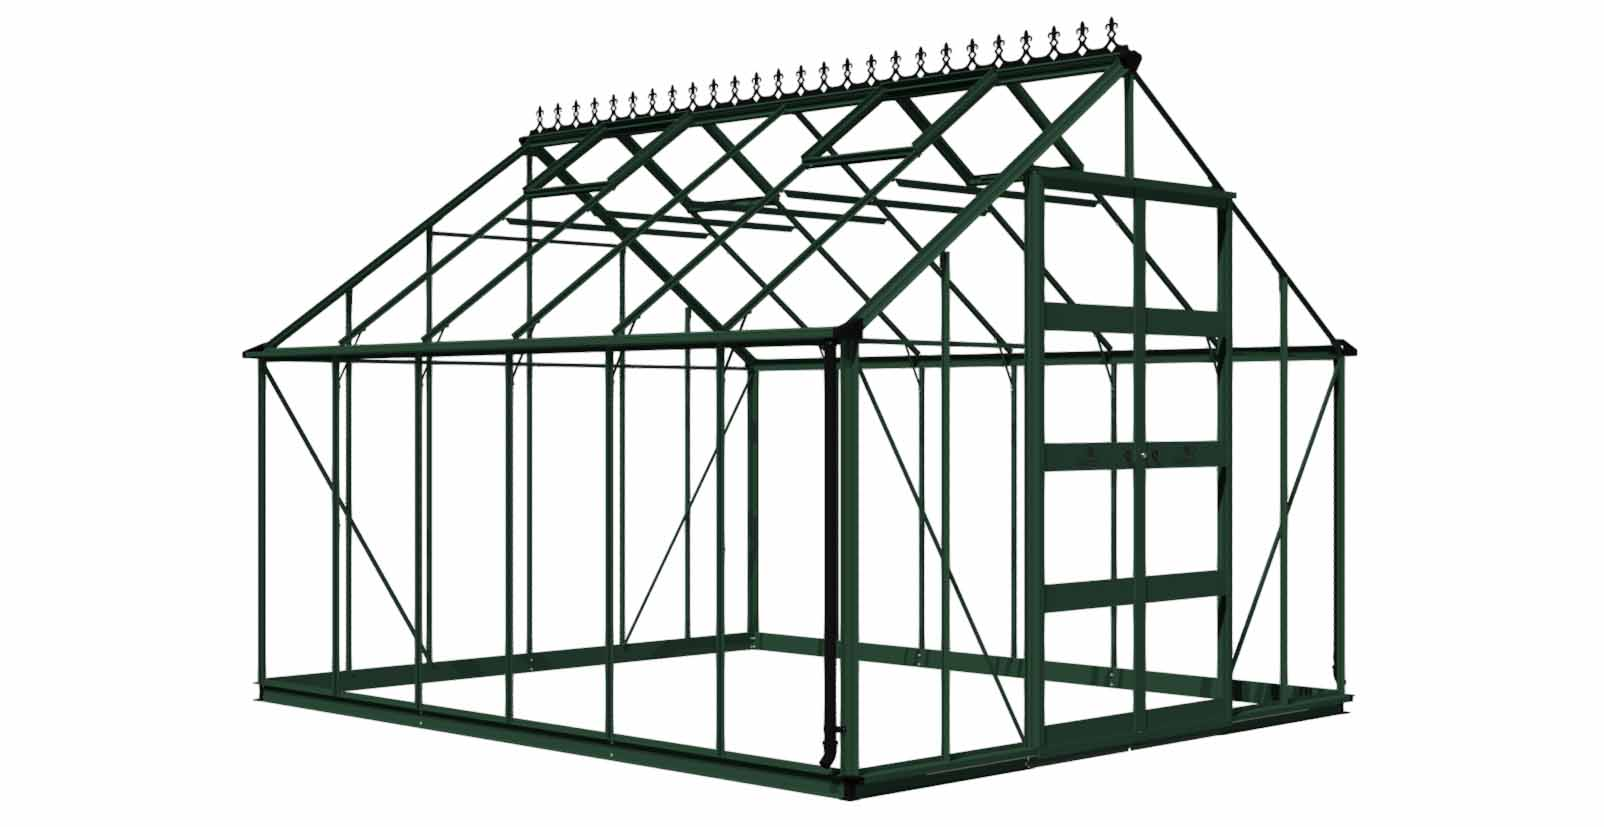 Royal Well Tuinkas Bourton 1210 Groen Gecoat Polycarbonaat 6mm